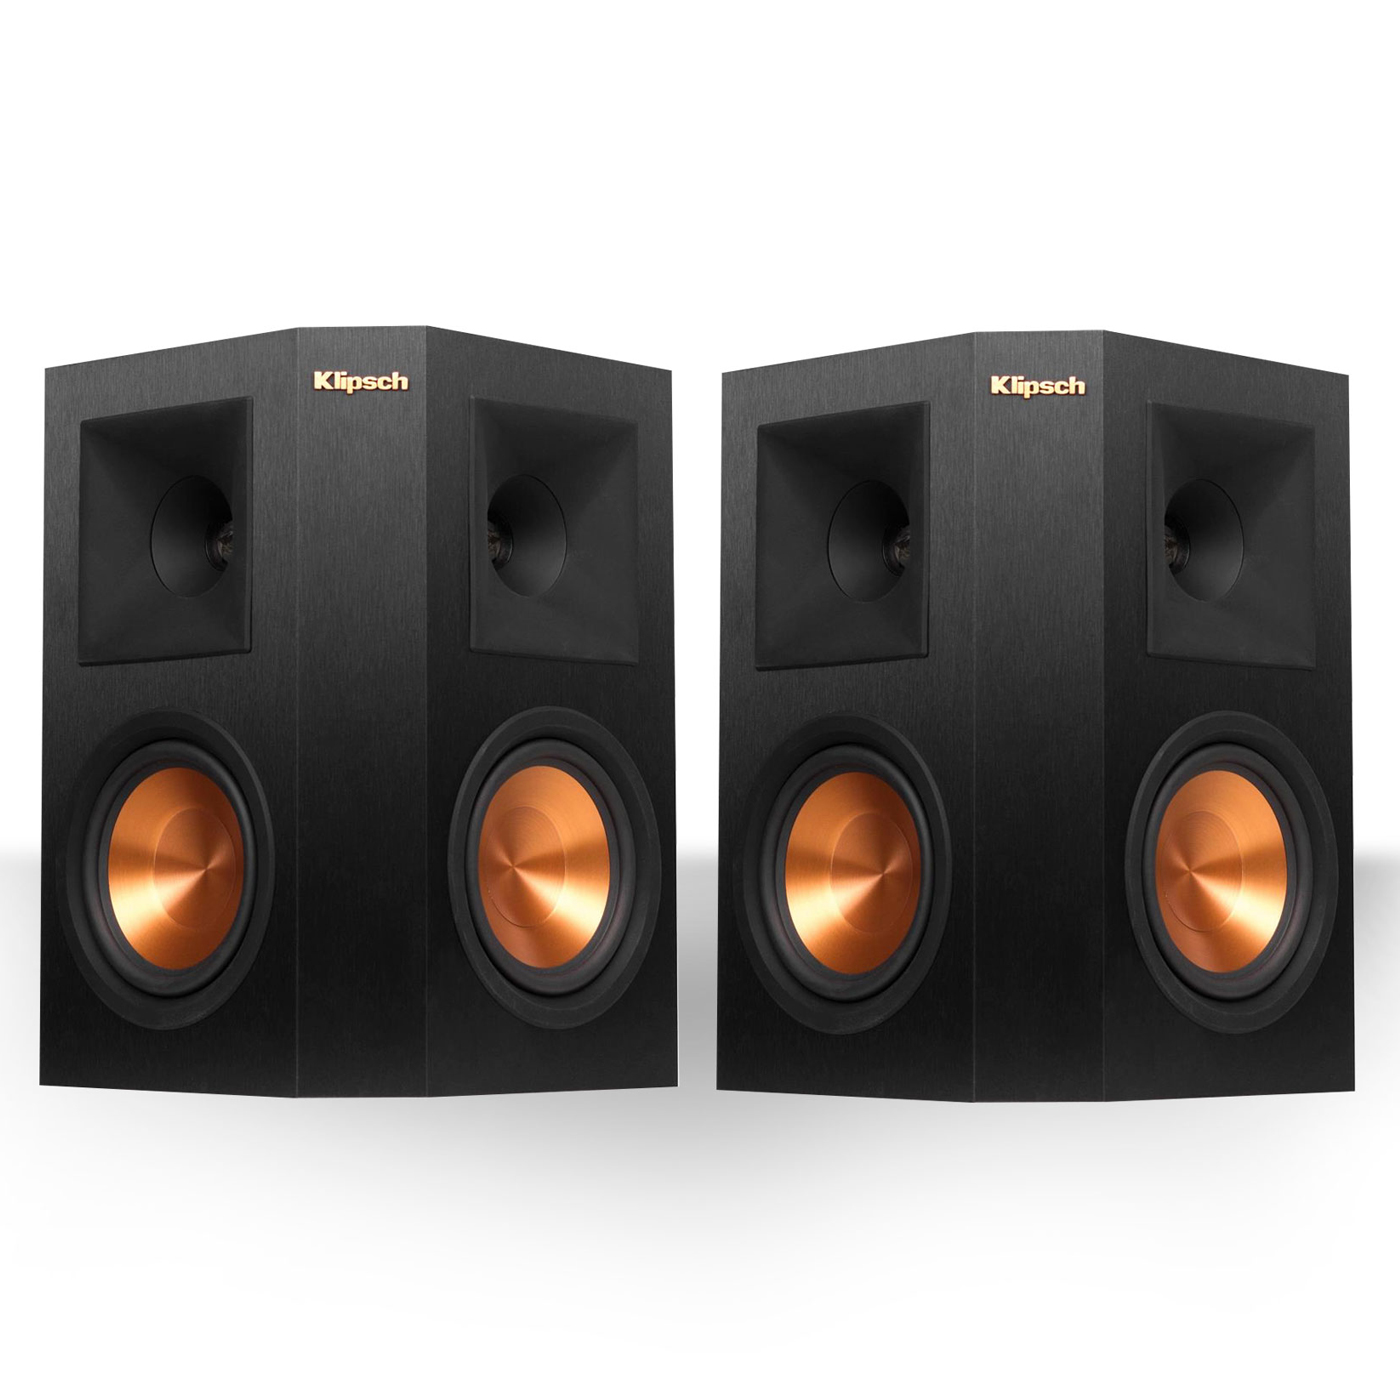 "Klipsch RP-250S Reference Premiere Surround Speakers with Dual 5.25"" Cerametallic Cone Woofers - Pair (Ebony)"